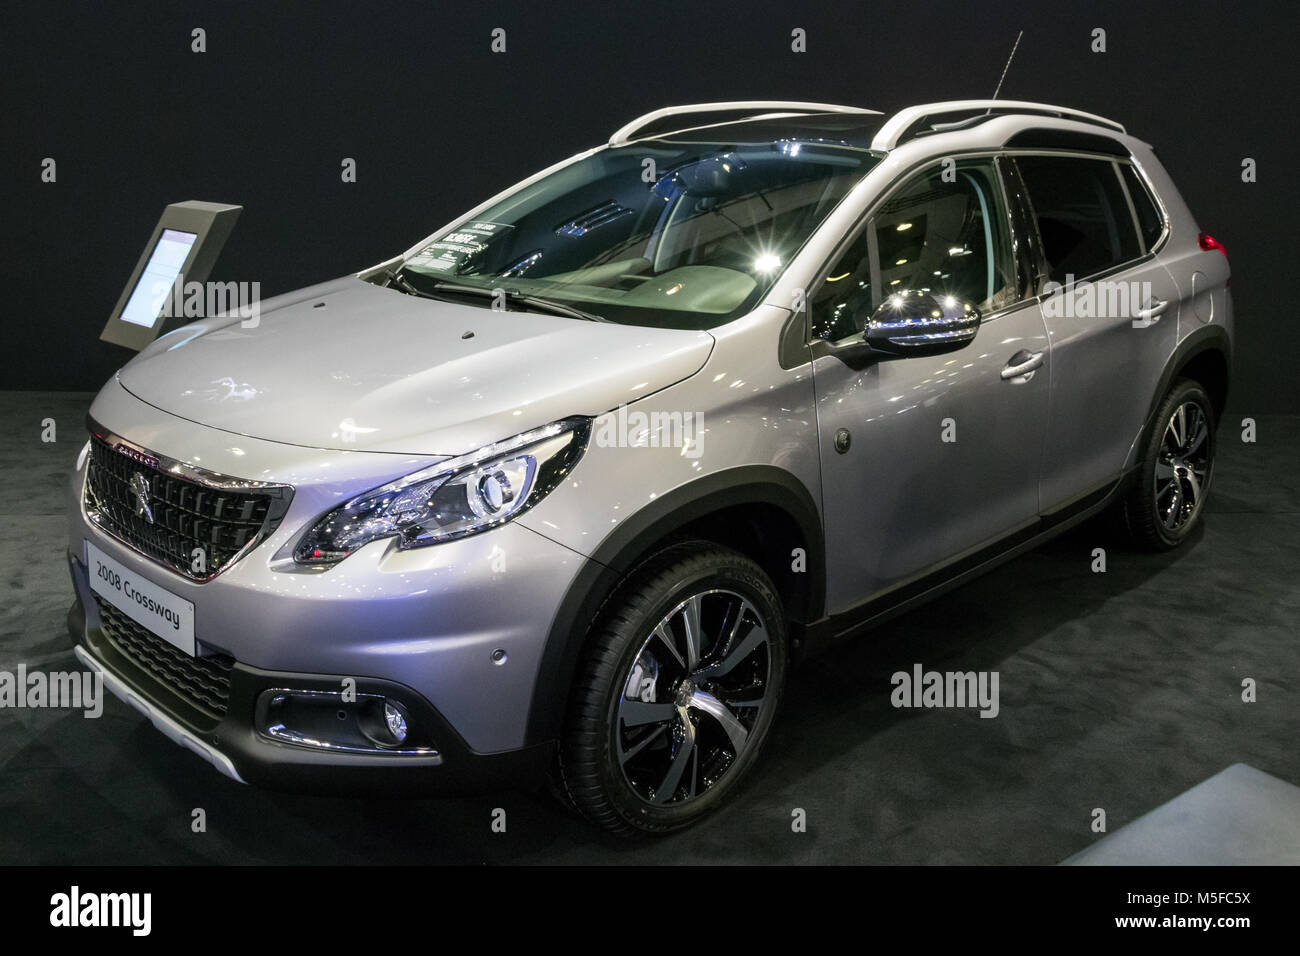 brussels jan 10 2018 peugeot 2008 crossway compact suv car shown stock photo 175515814 alamy. Black Bedroom Furniture Sets. Home Design Ideas